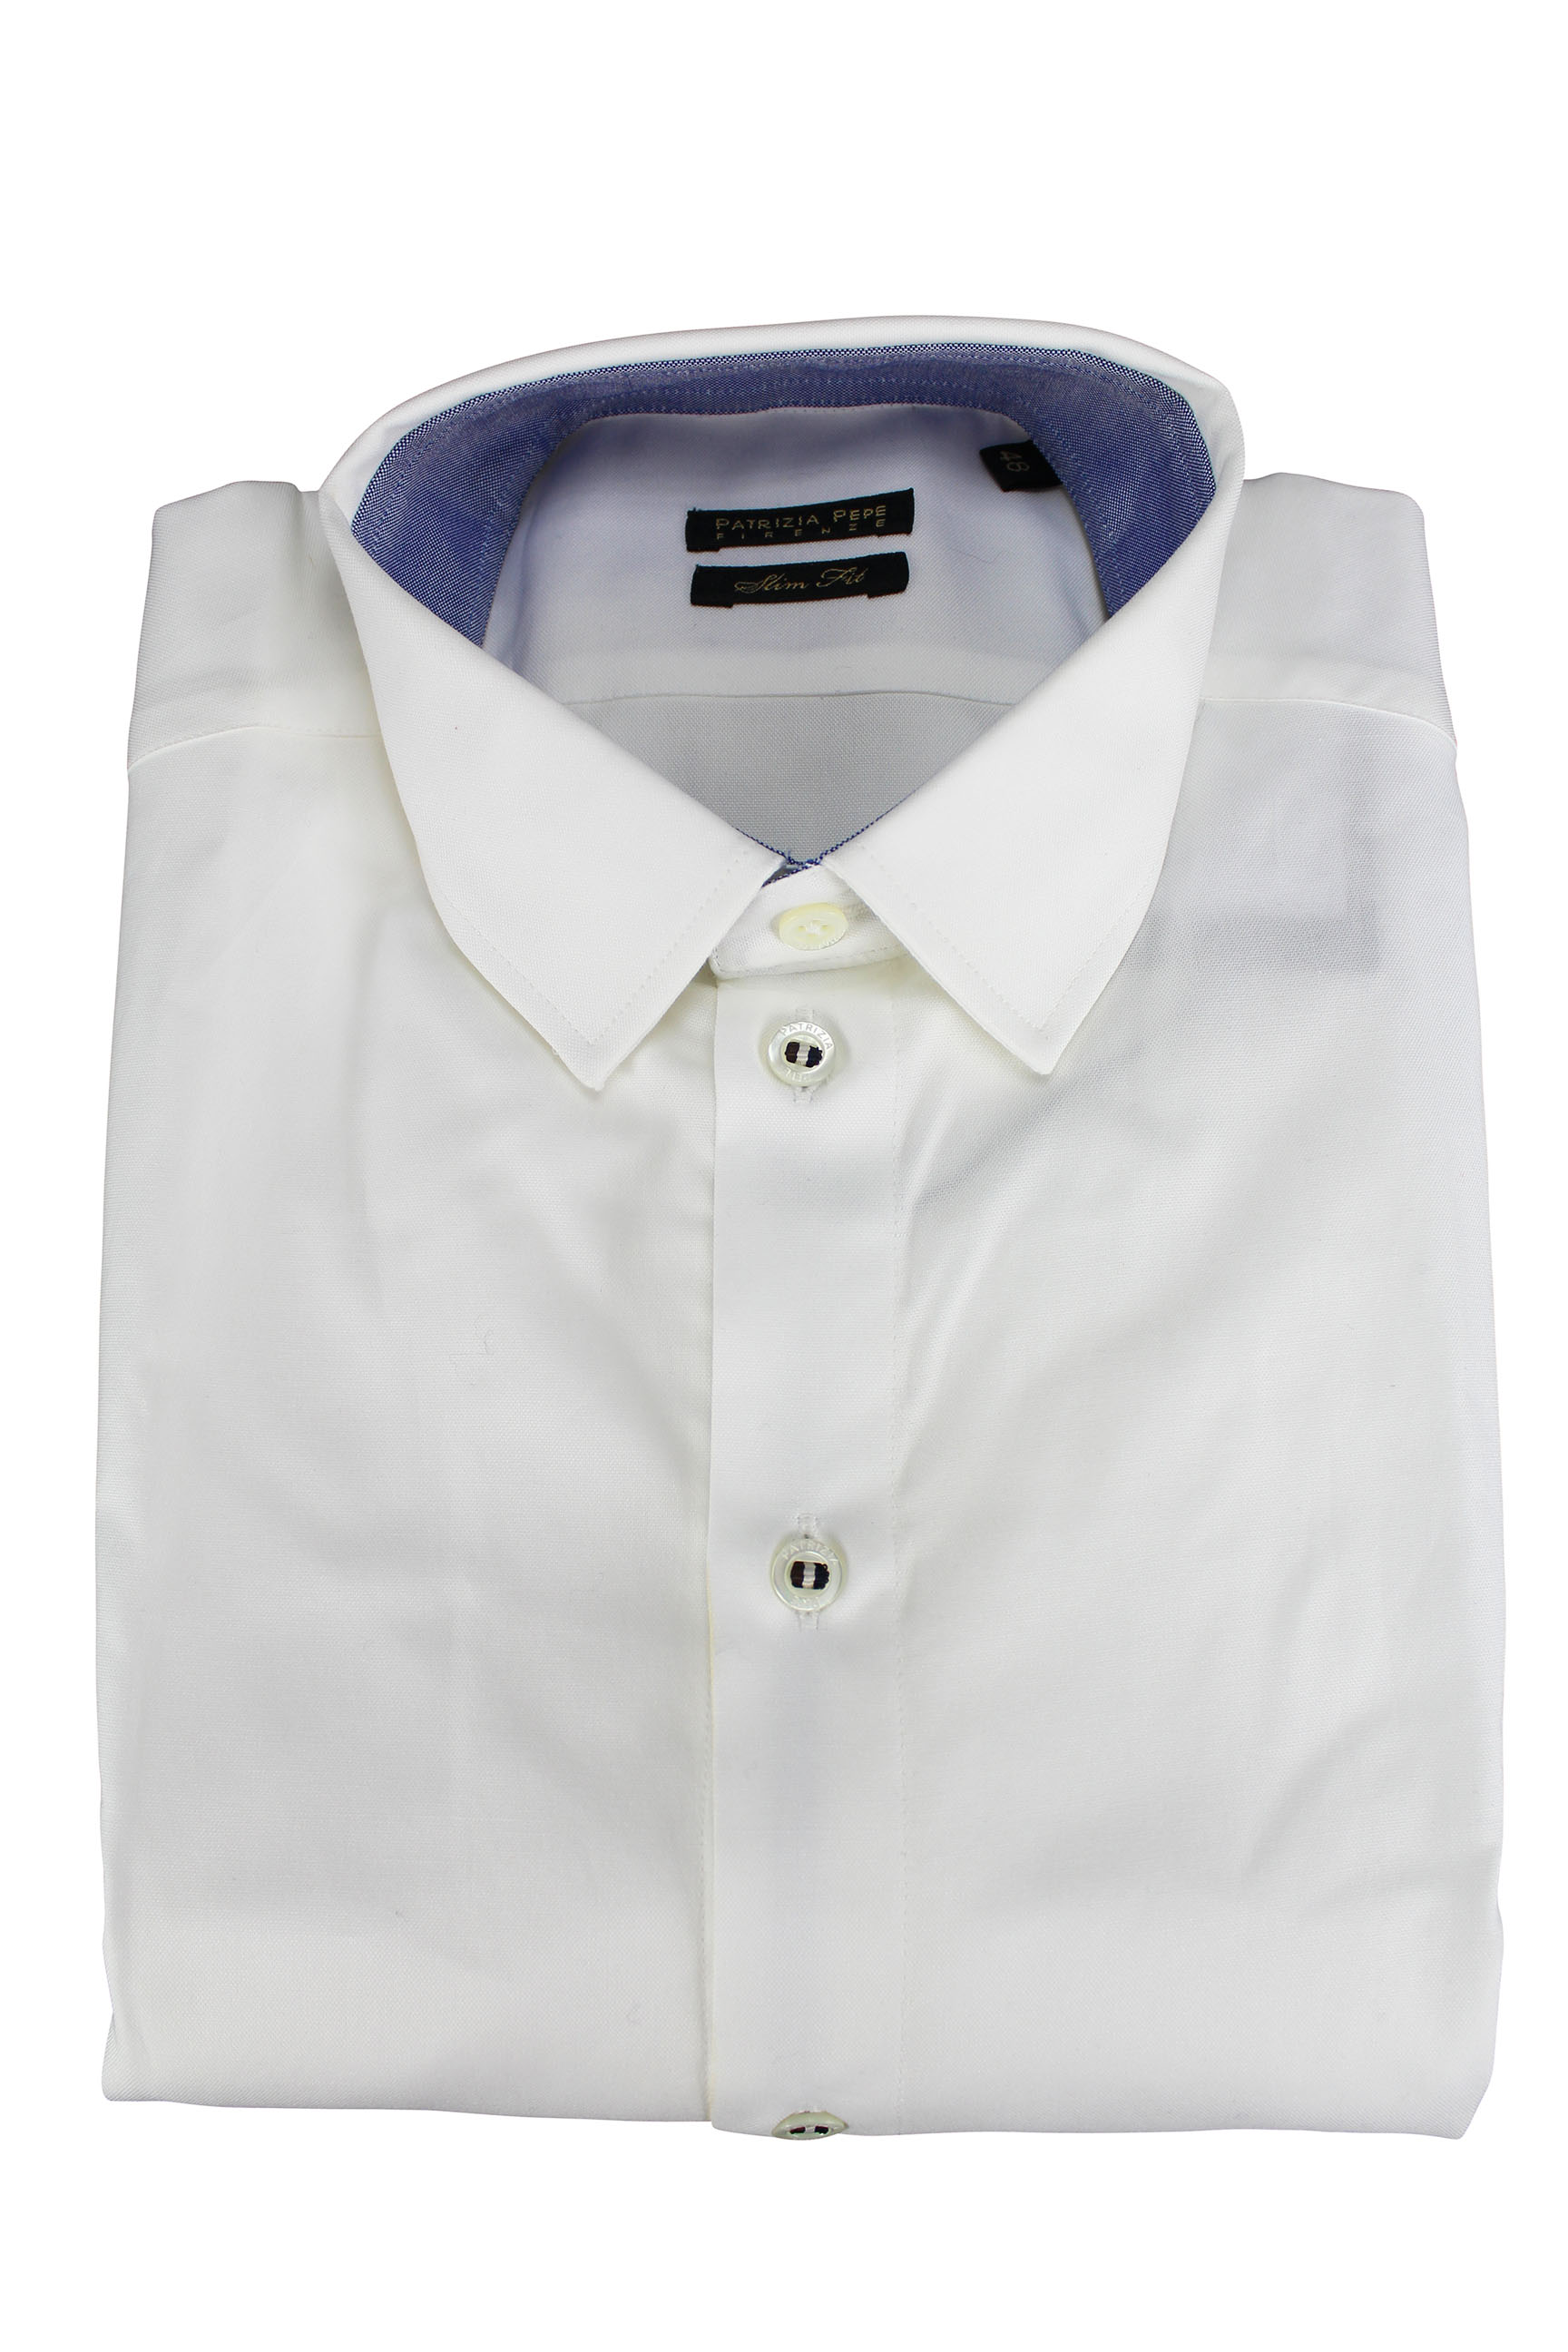 Patrizia Pepe Mens Dress Shirt Size M Us 48 It Regular White